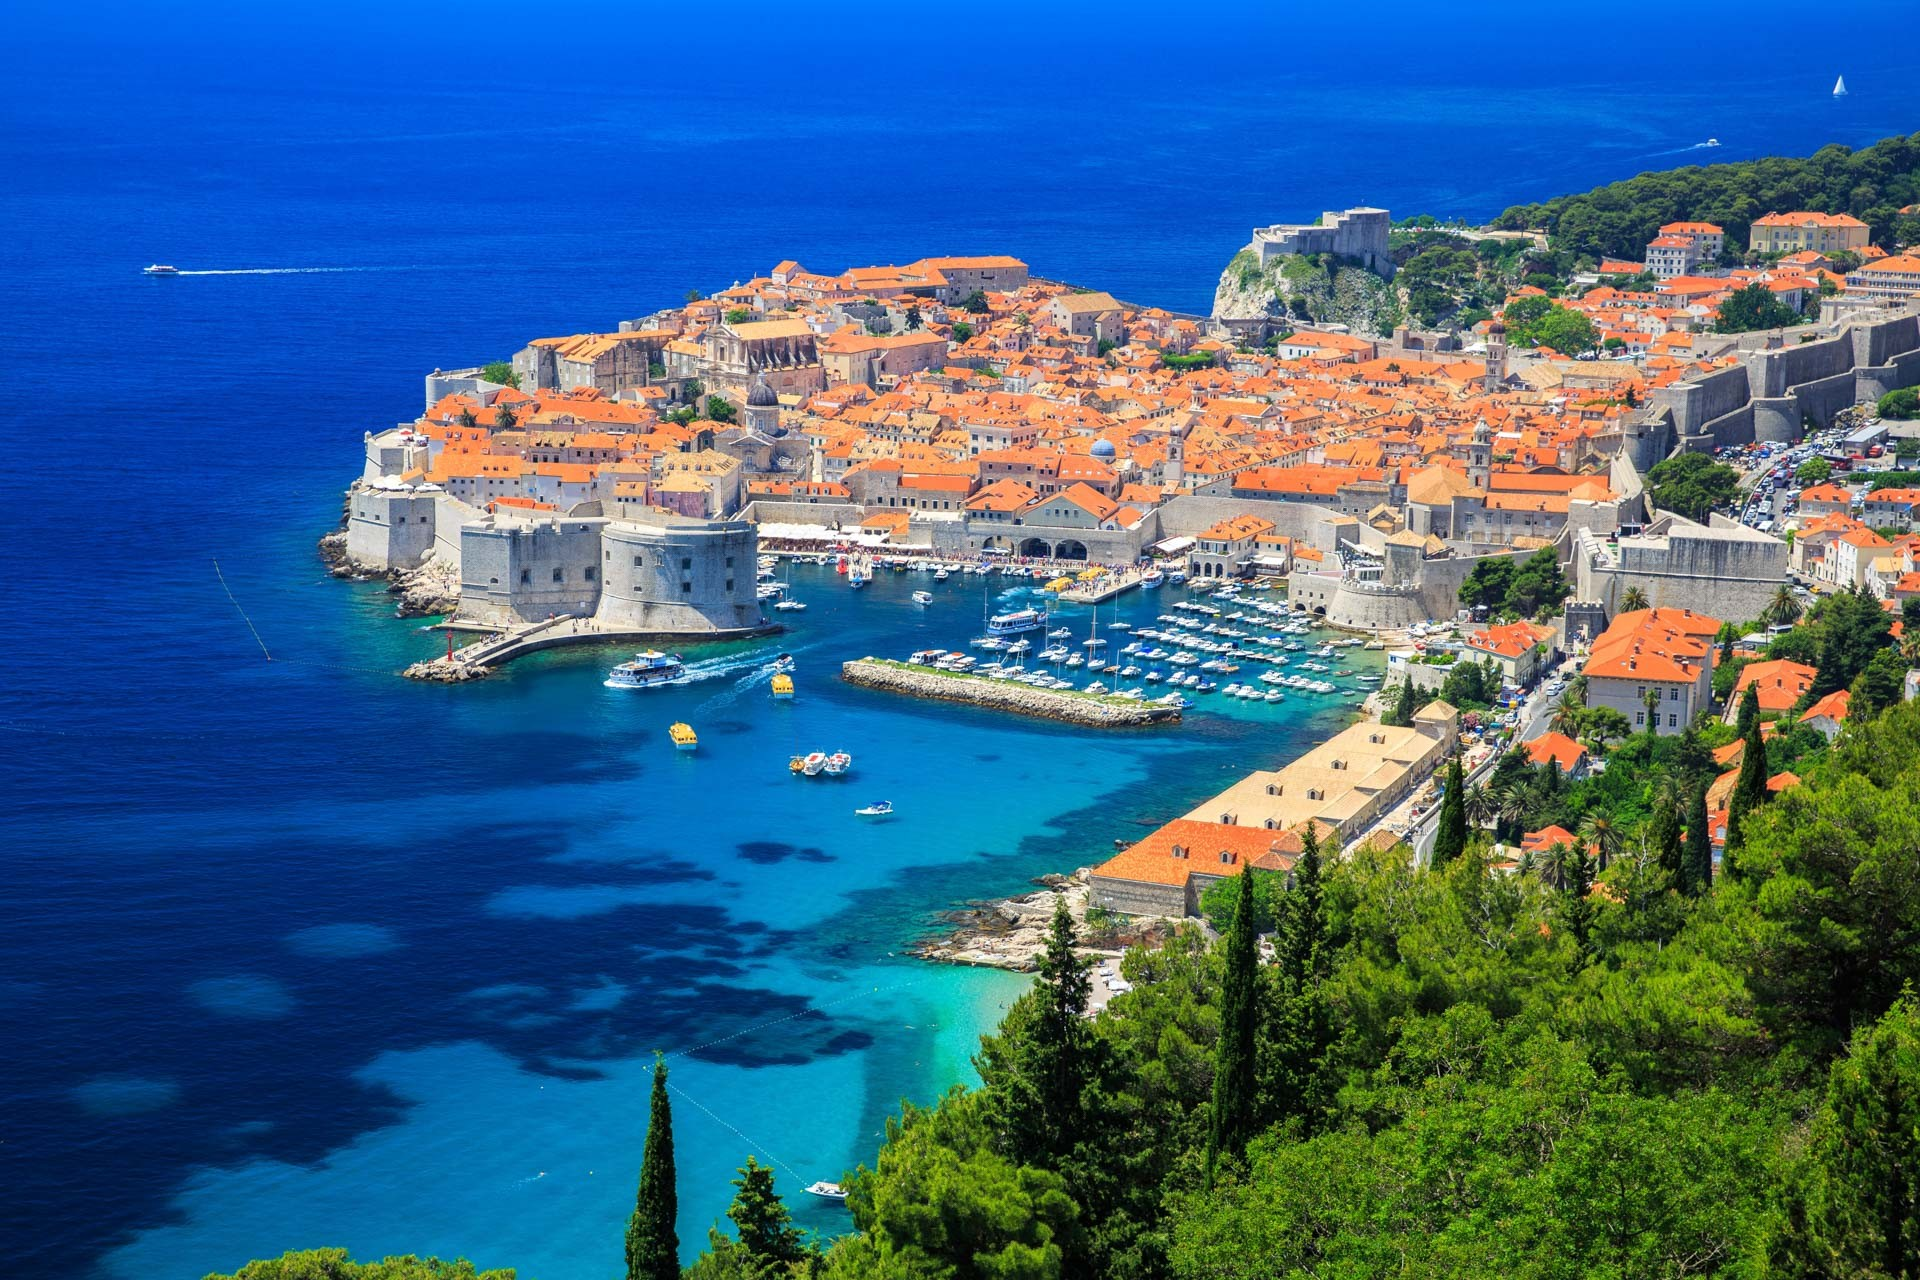 DUBROVNIK – DUBROVNIK - ZAGREB Land and Cruise in 15 days